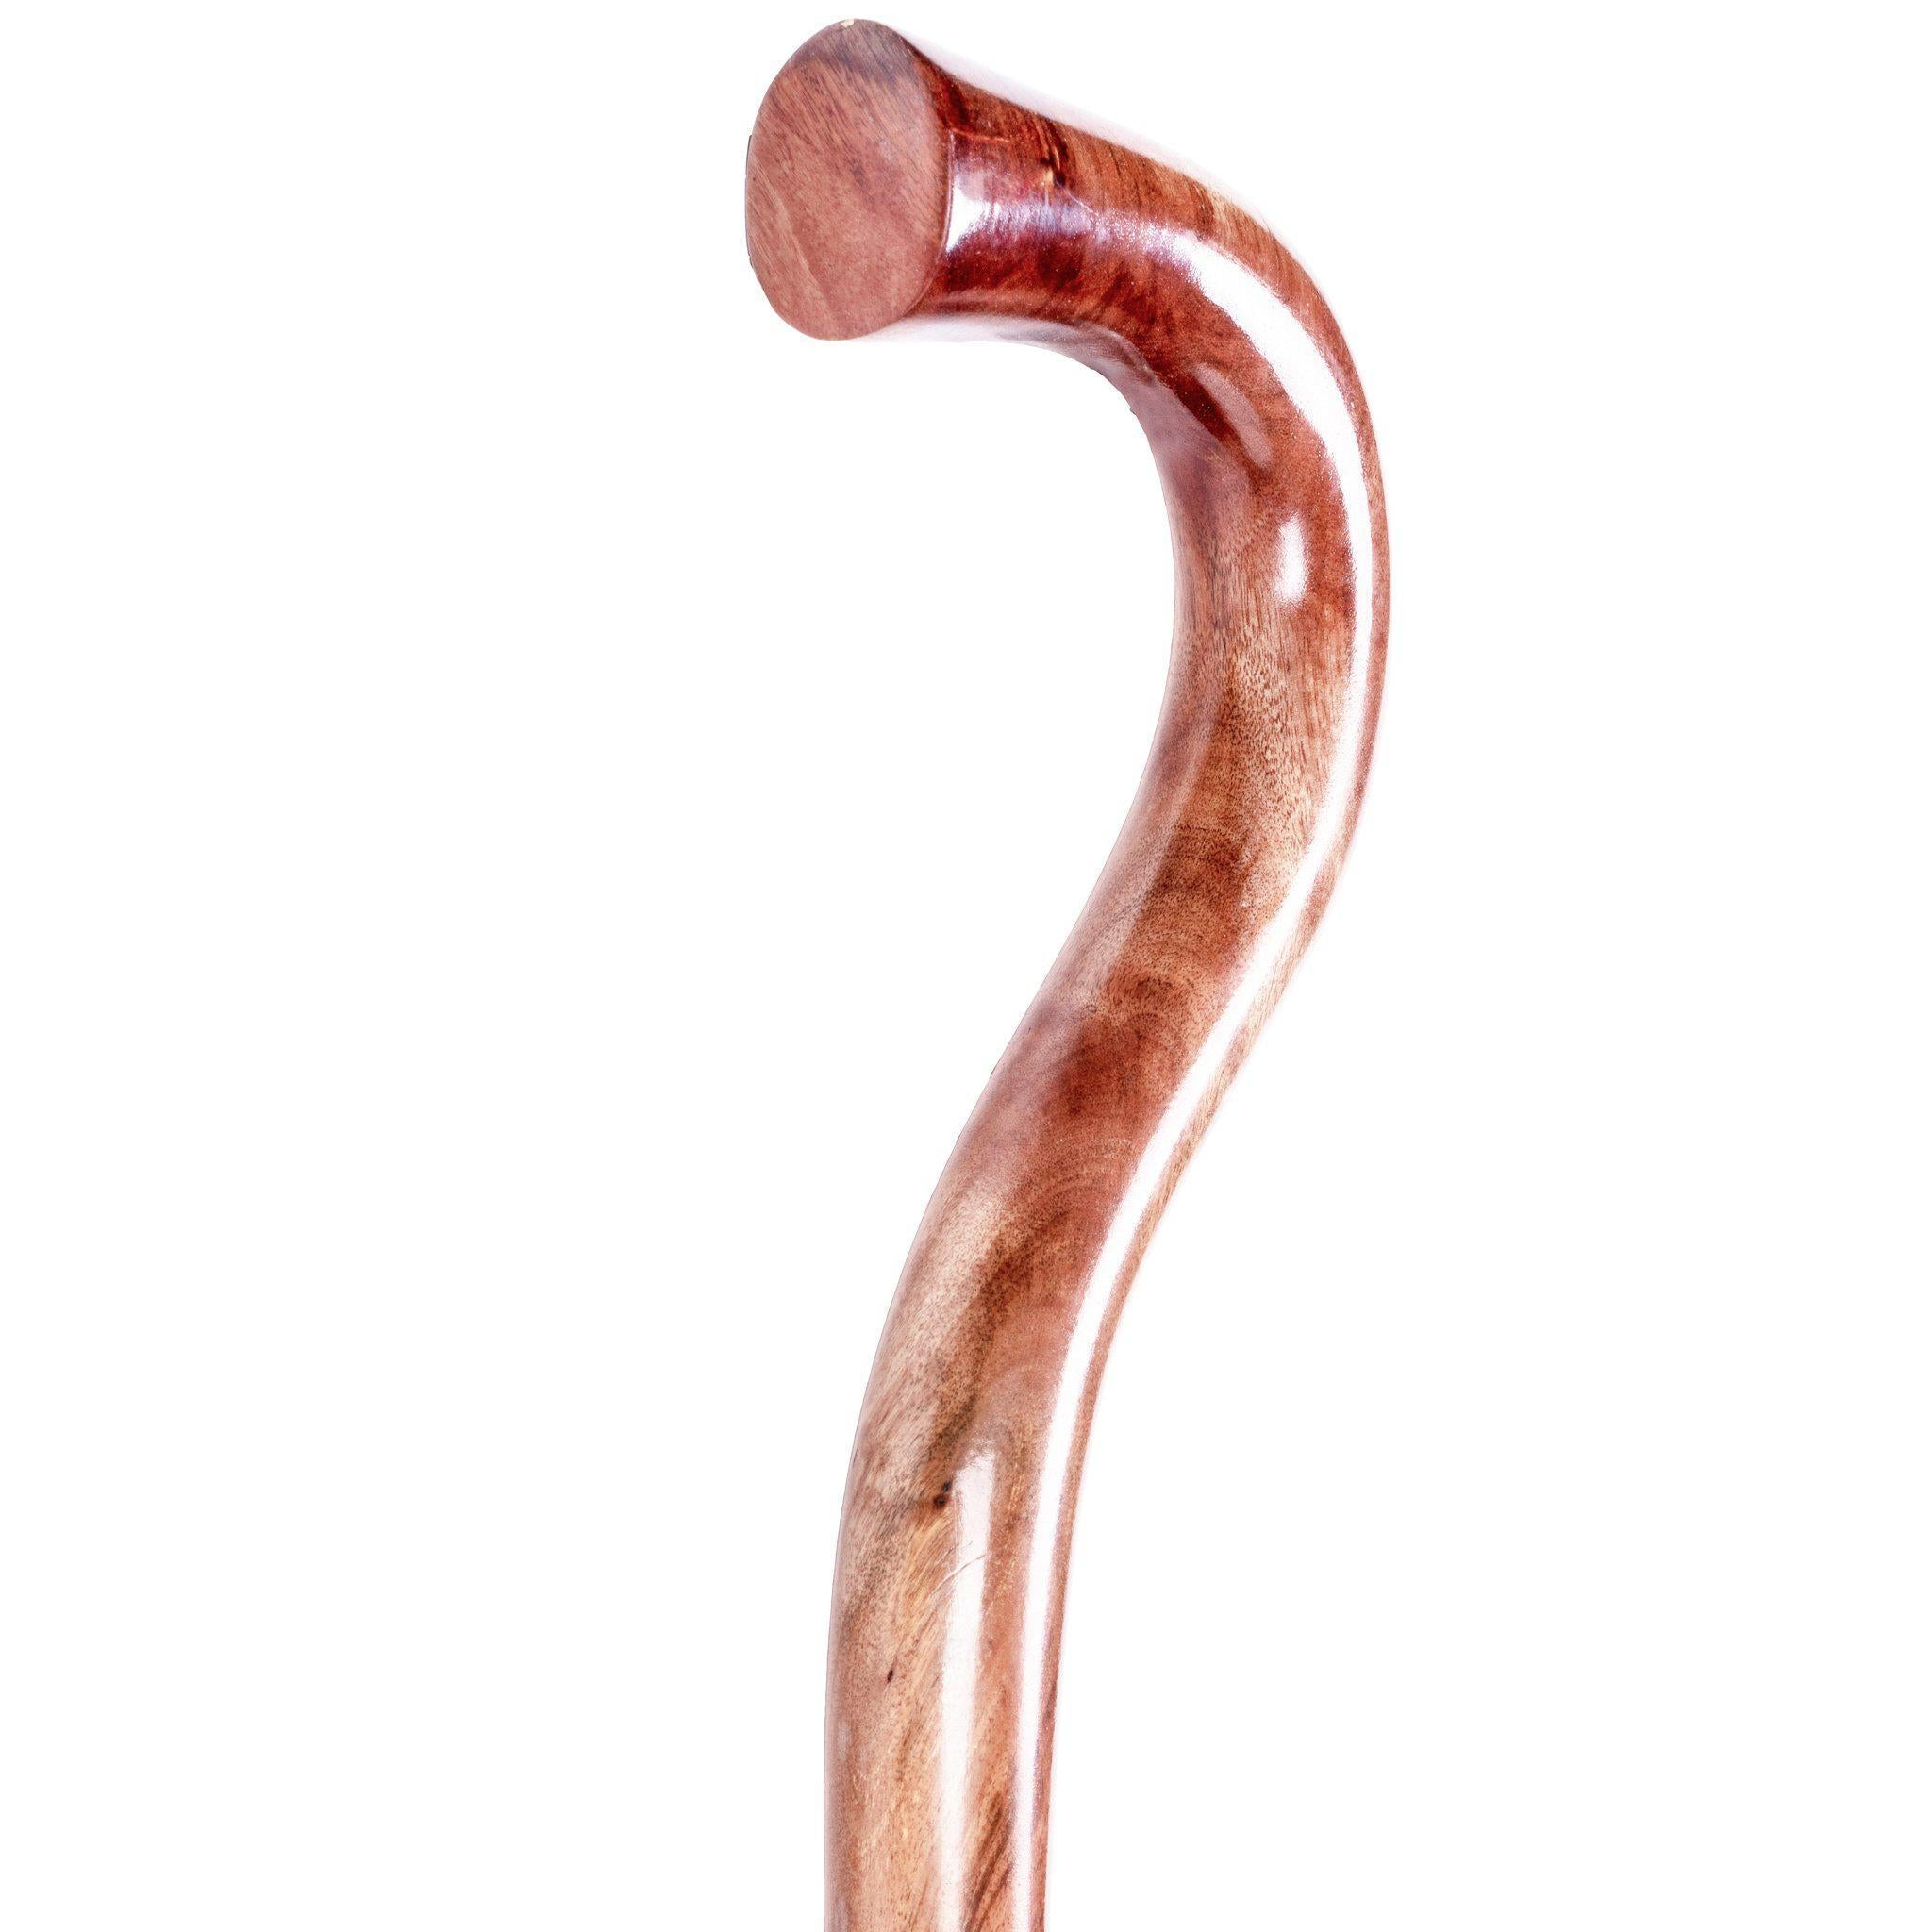 Walking Cane - Limited Edition - 11.5cm Length x 89.5cm Height - Pemphis Acidula - Mahajati